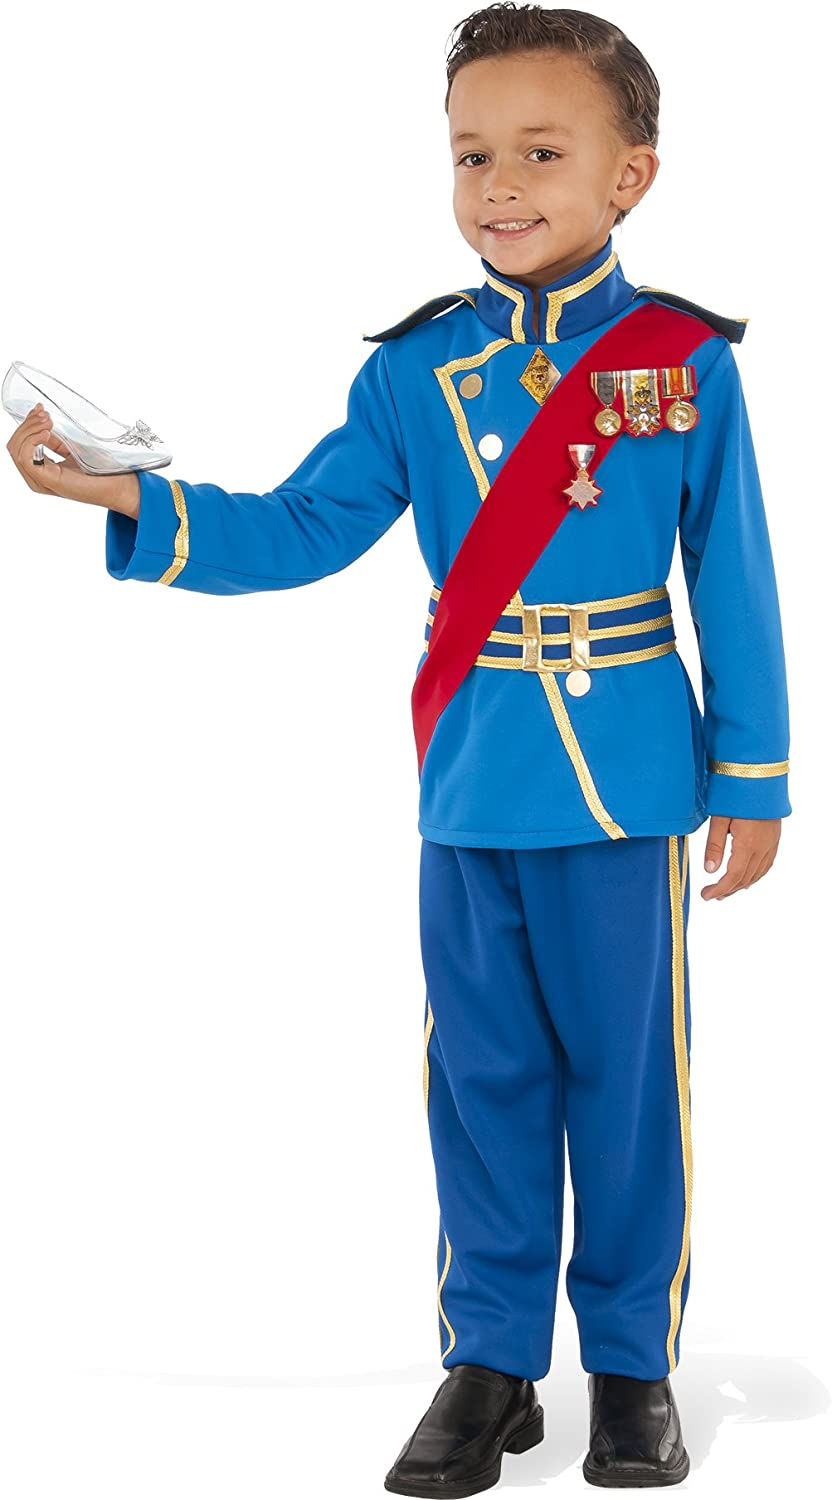 Rubies Costume 630964-S Childs Royal Prince Costume Multicolor RUBJ0 Small